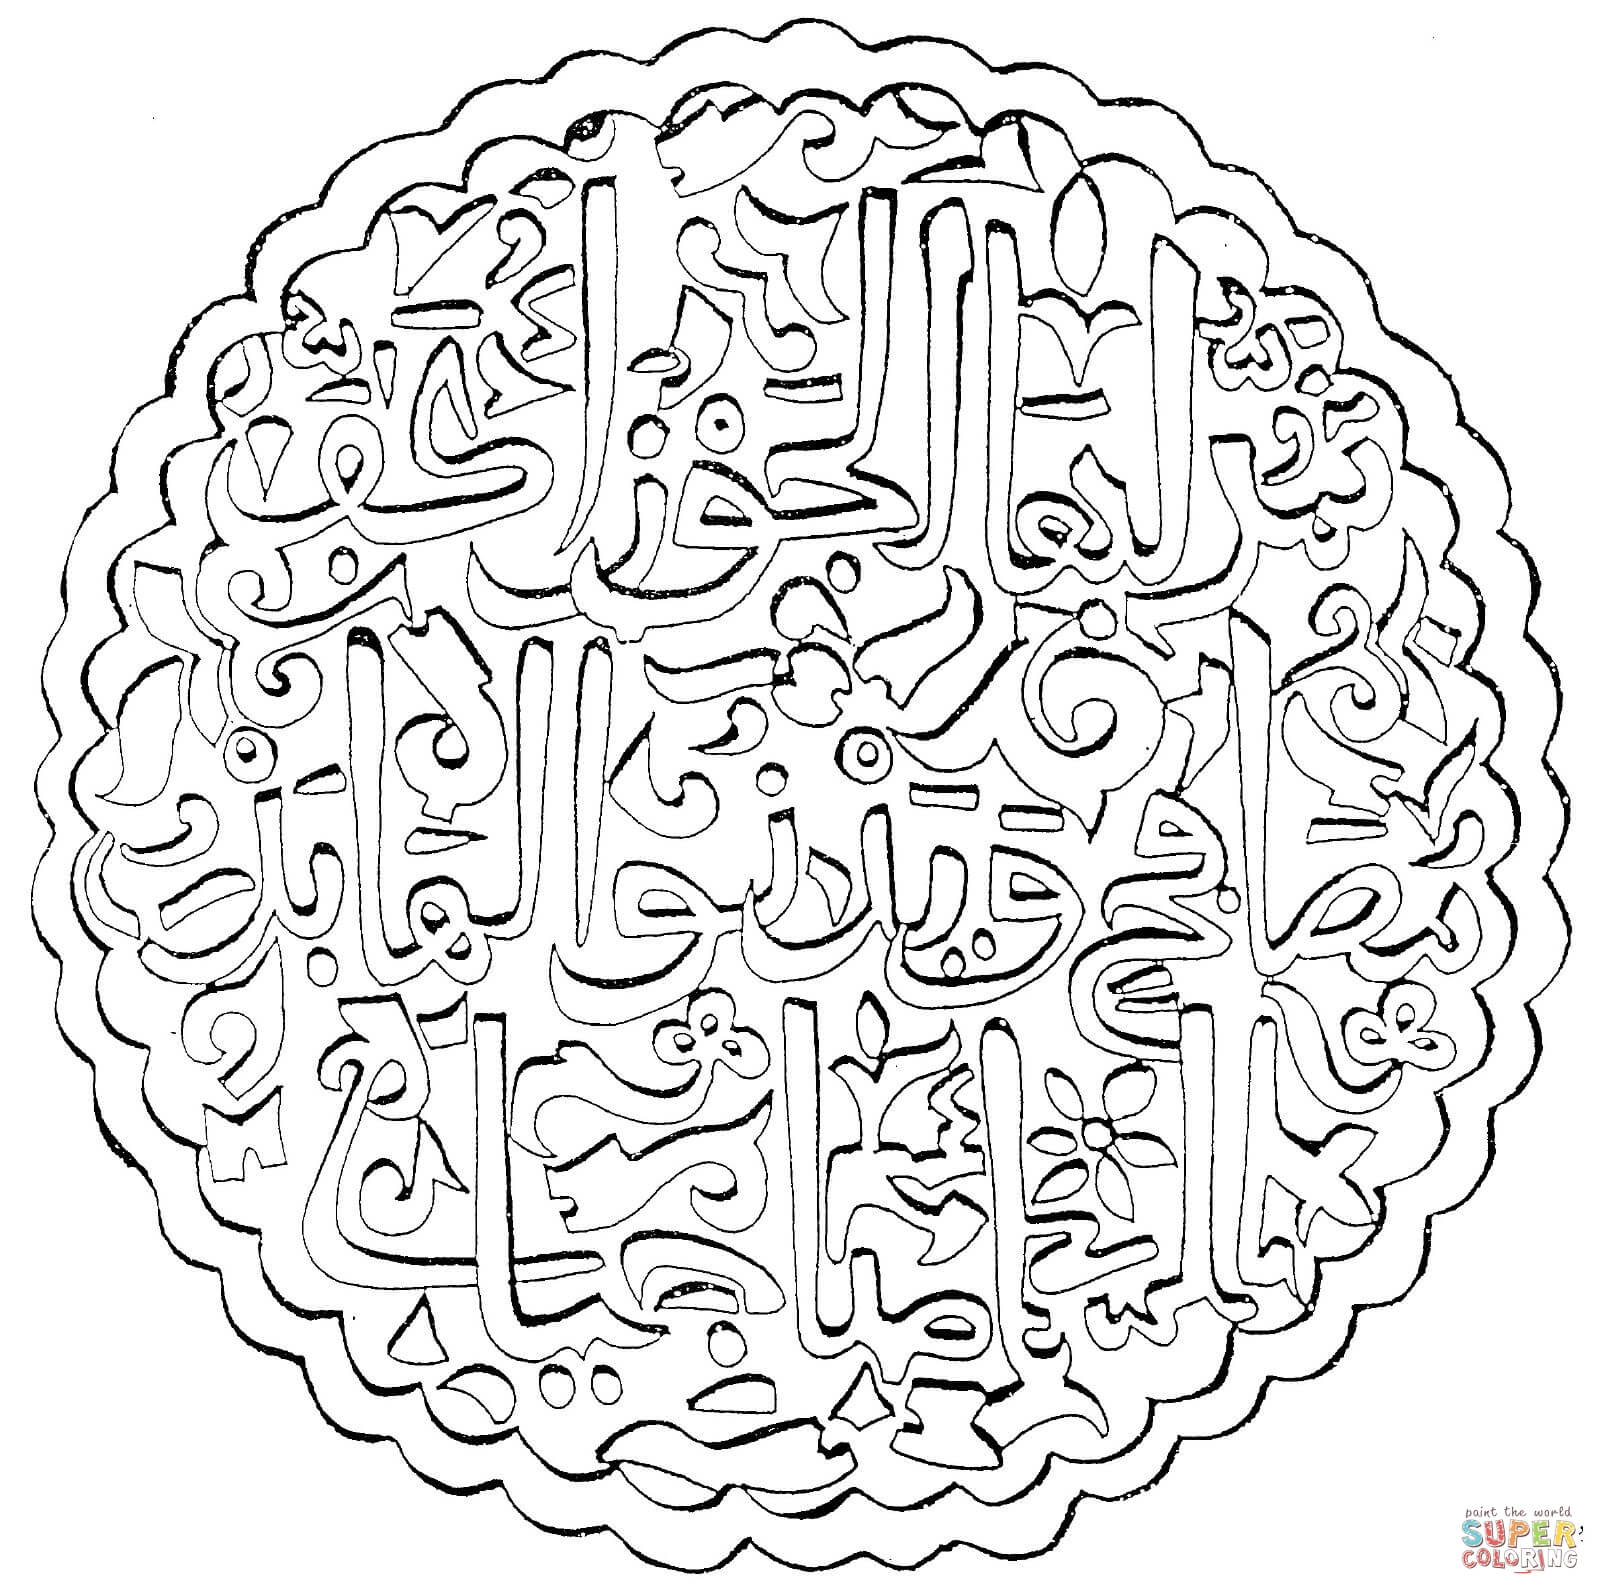 islamic art coloring pages islamic art coloring pages at getdrawings free download islamic pages art coloring